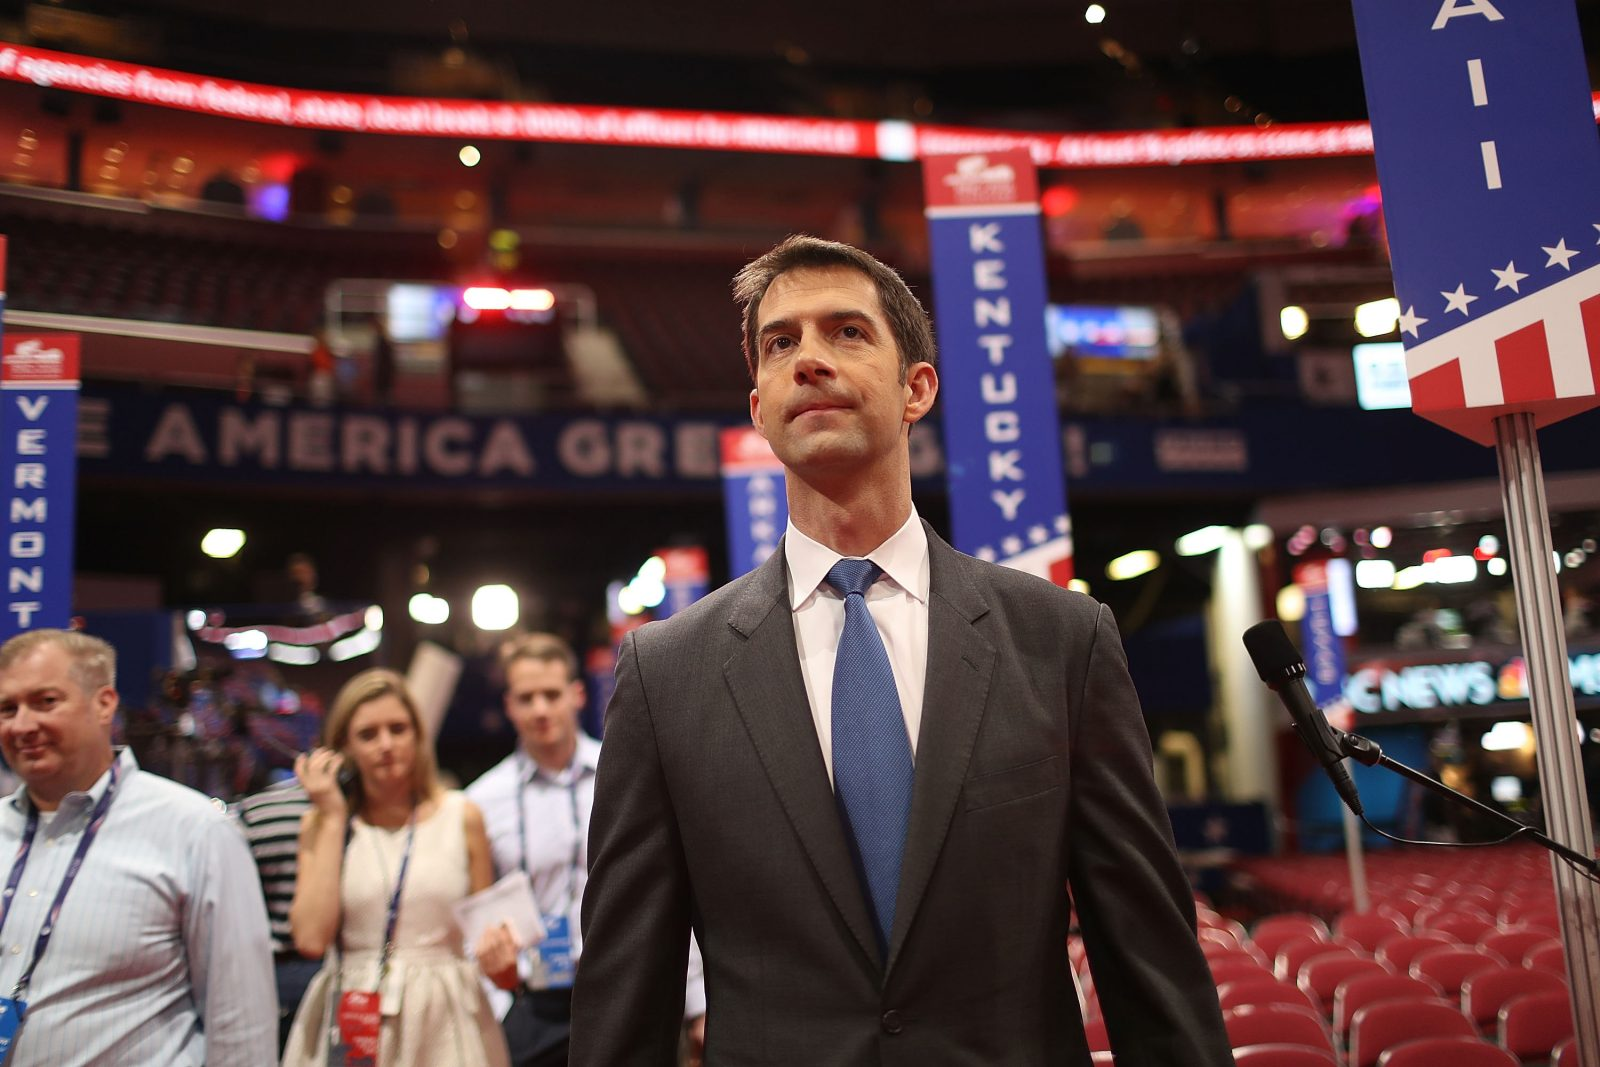 CLEVELAND, OH - JULY 17:  Sen. Tom Cotton (R-AR) visits the Quicken Loans Arena ahead of the Republican National Convention on July 17, 2016 in Cleveland, Ohio. The RNC is set for July 18-21 at the arena.  (Photo by Joe Raedle/Getty Images)